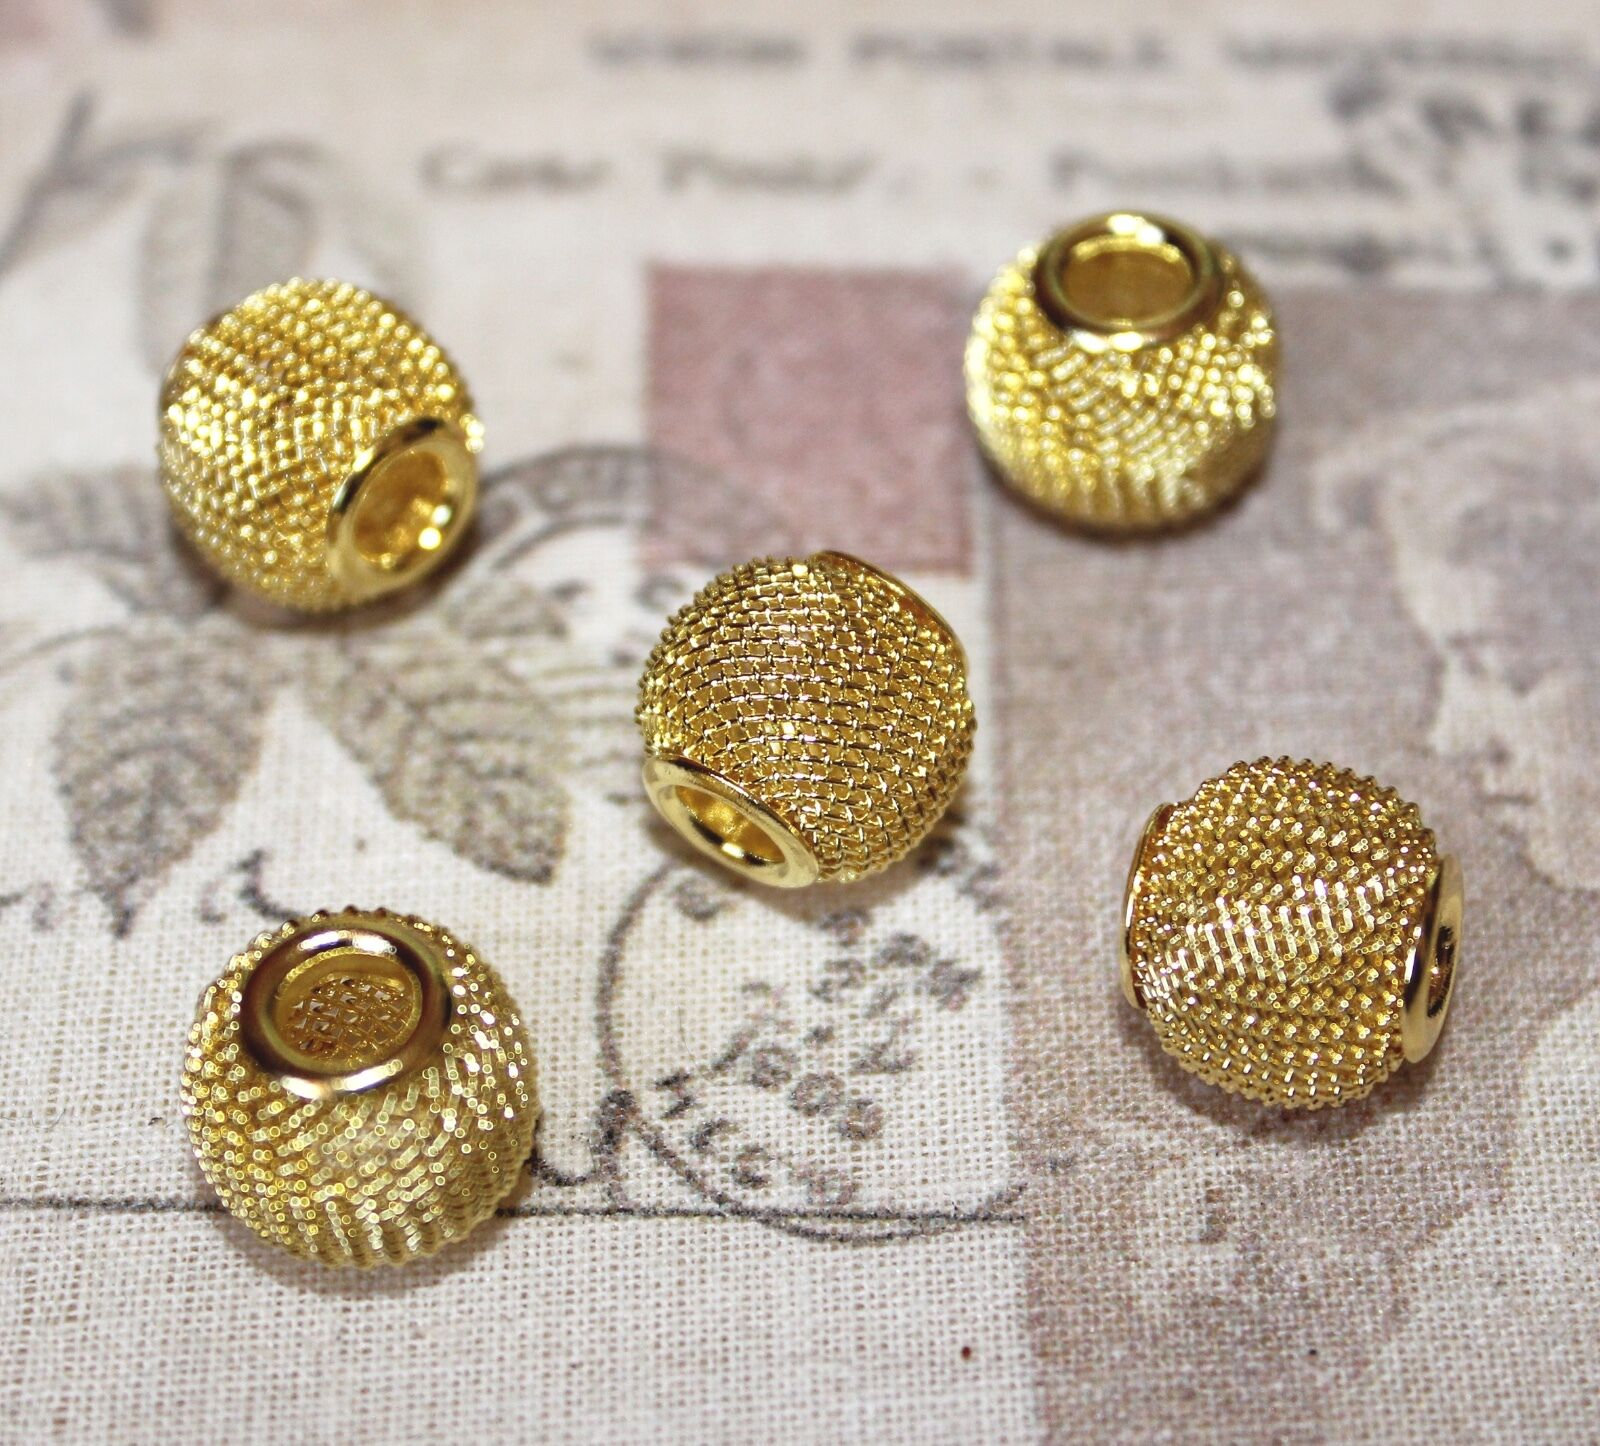 MB36 10 x Pretty Round Filigree BRASS Beads Gold Plated 8mm Nickel Free Craft